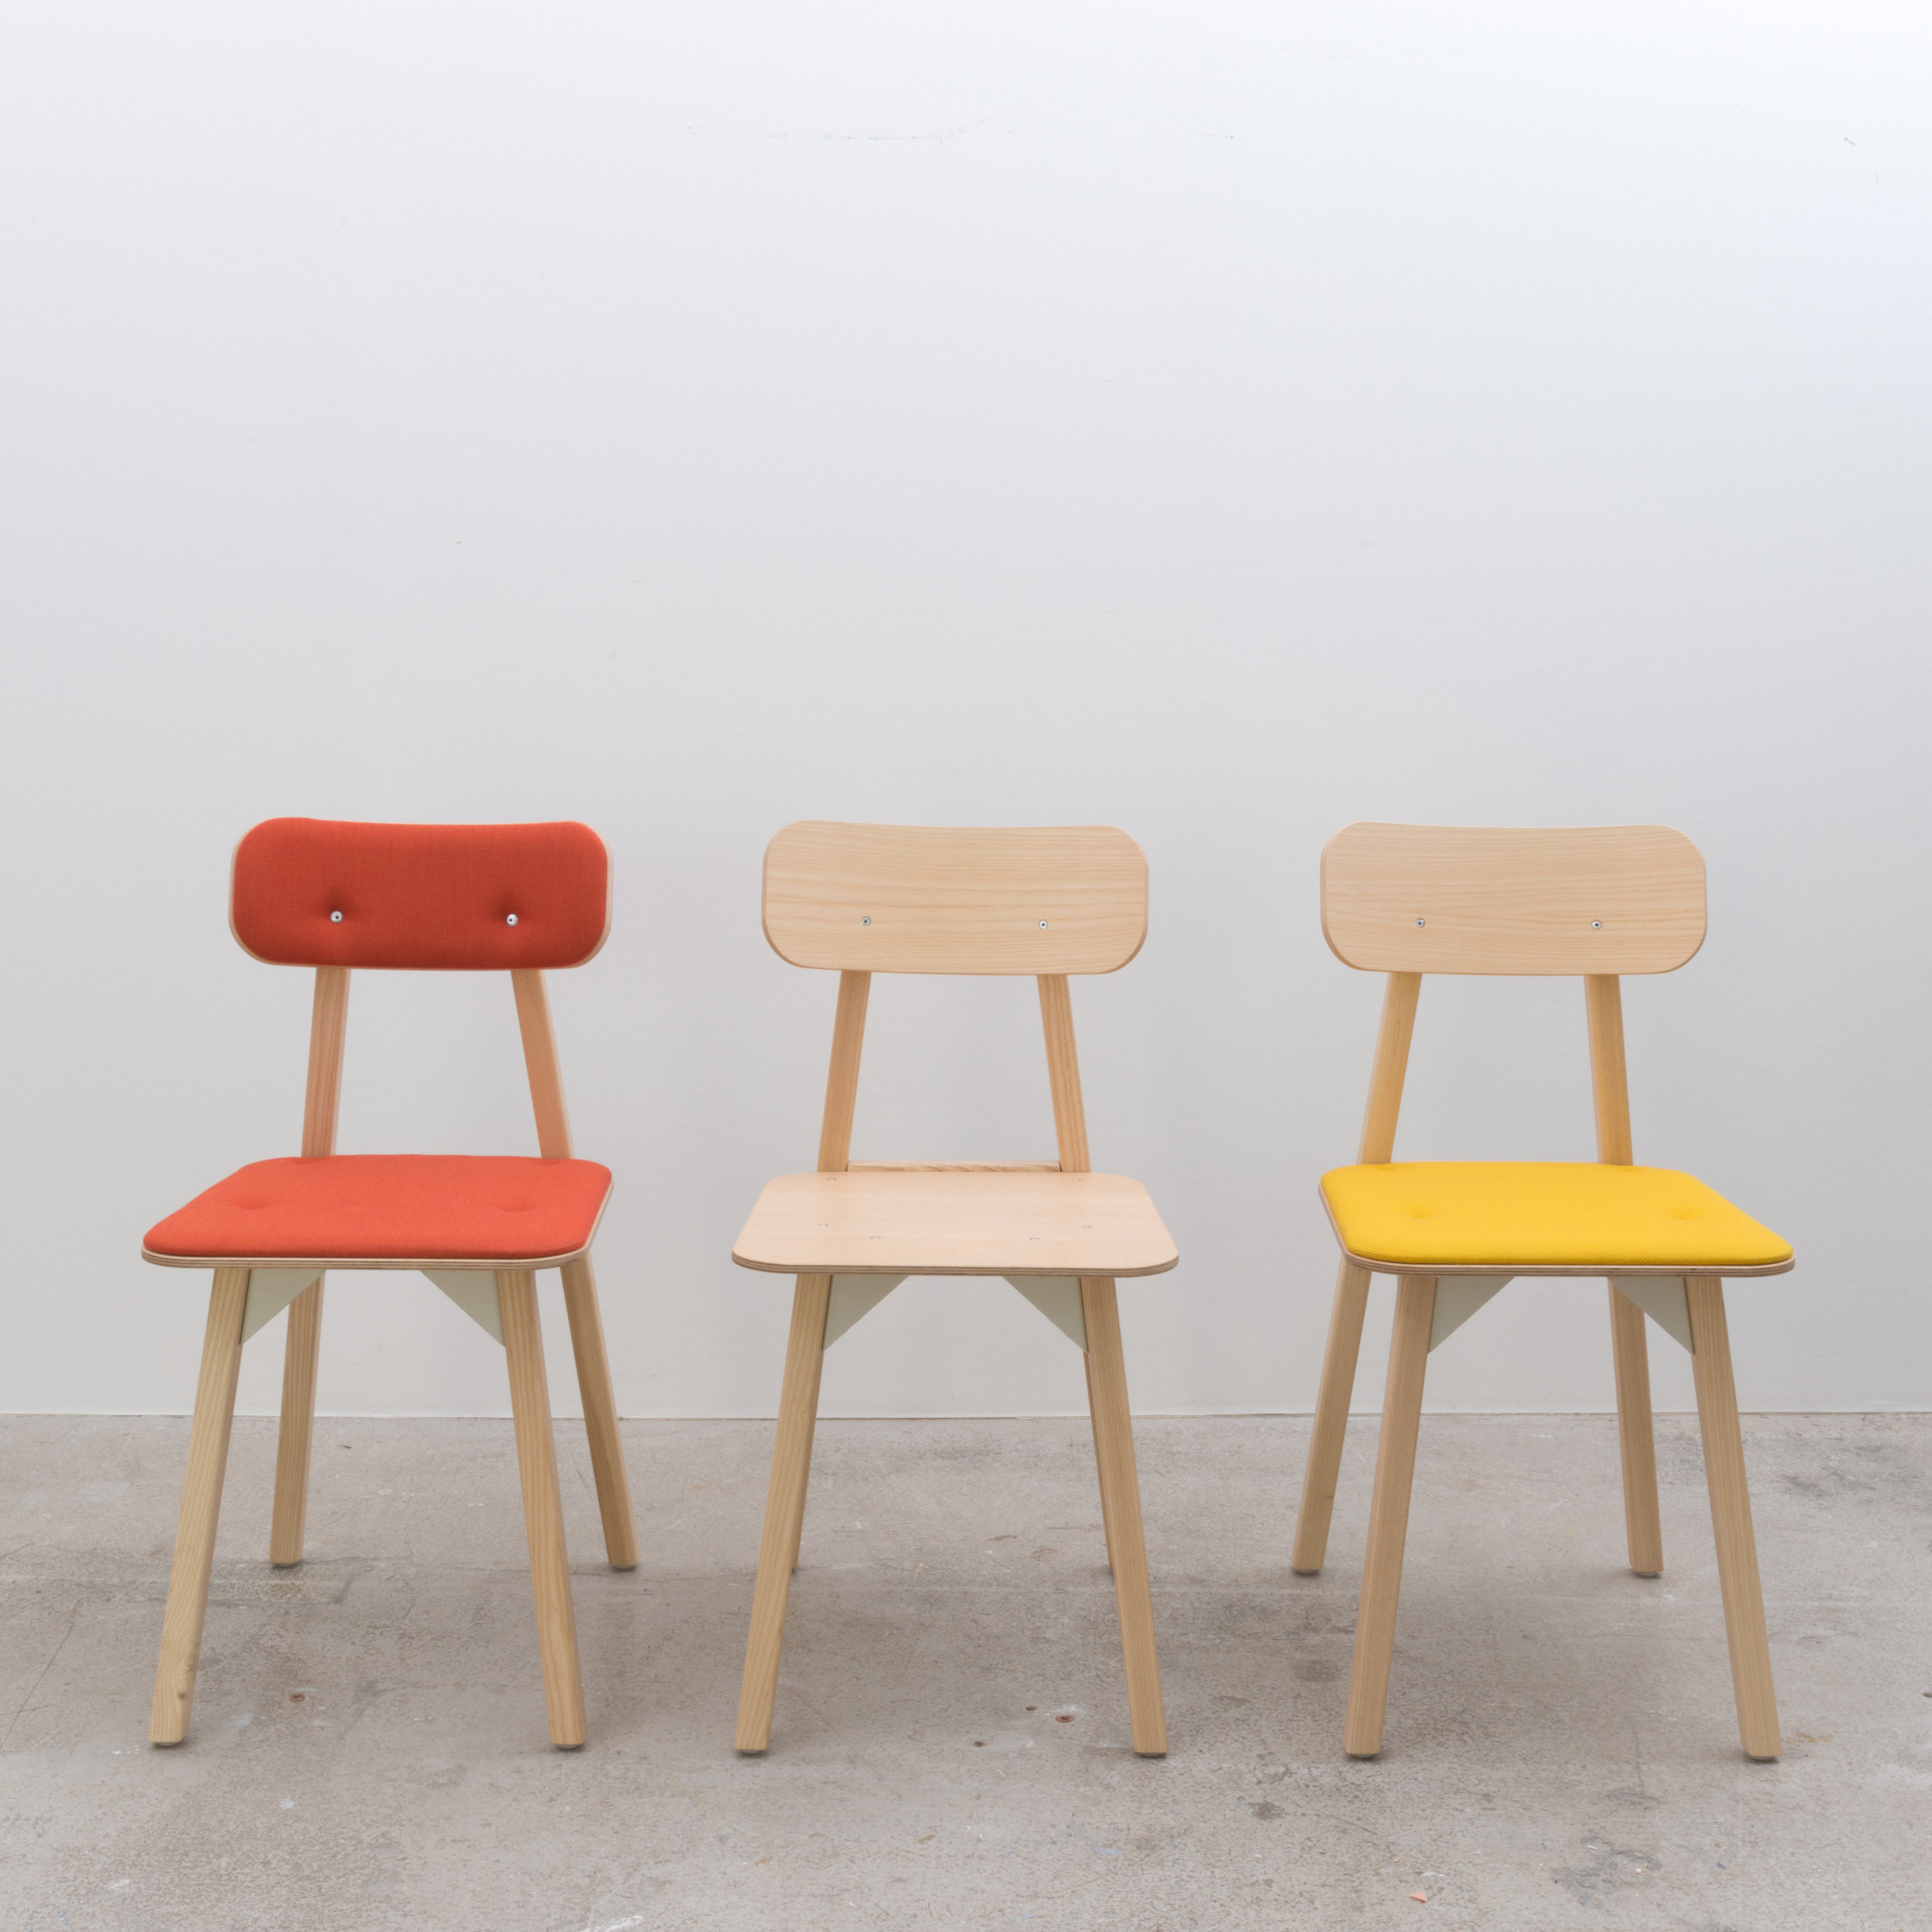 Upholstered and Ash ply variants